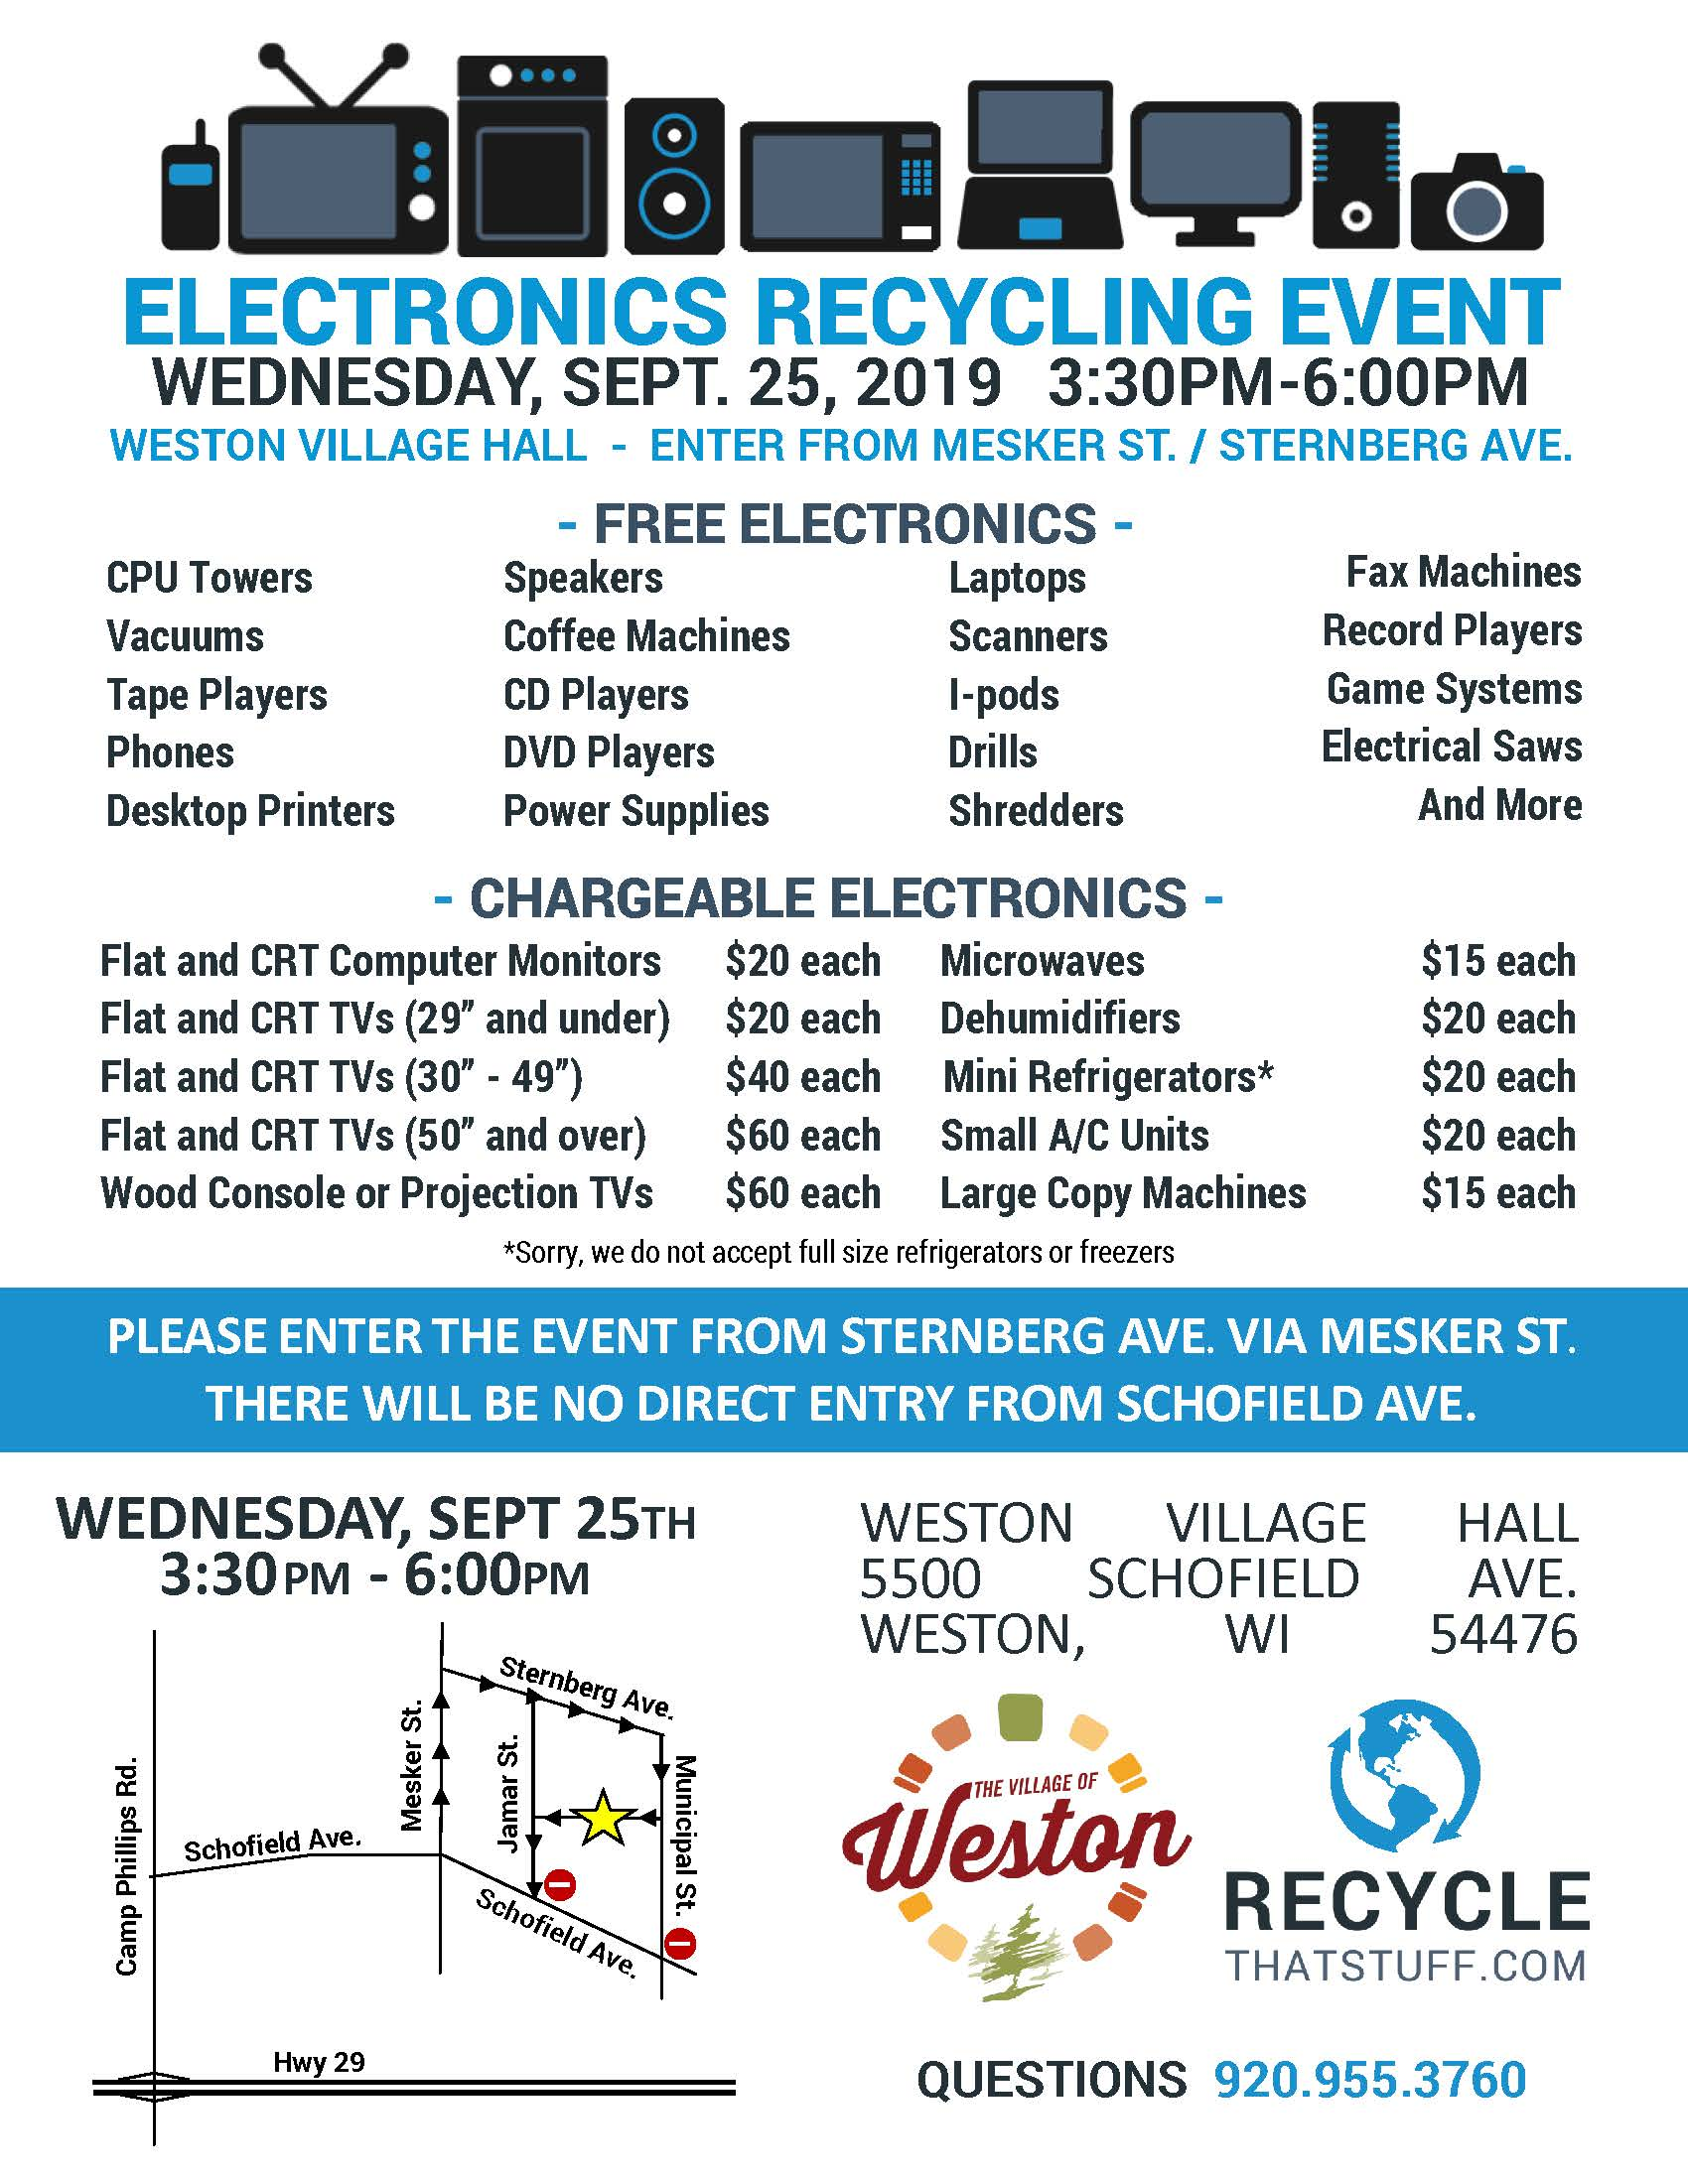 Electronics Recycling Event Flyer - Fall 2019